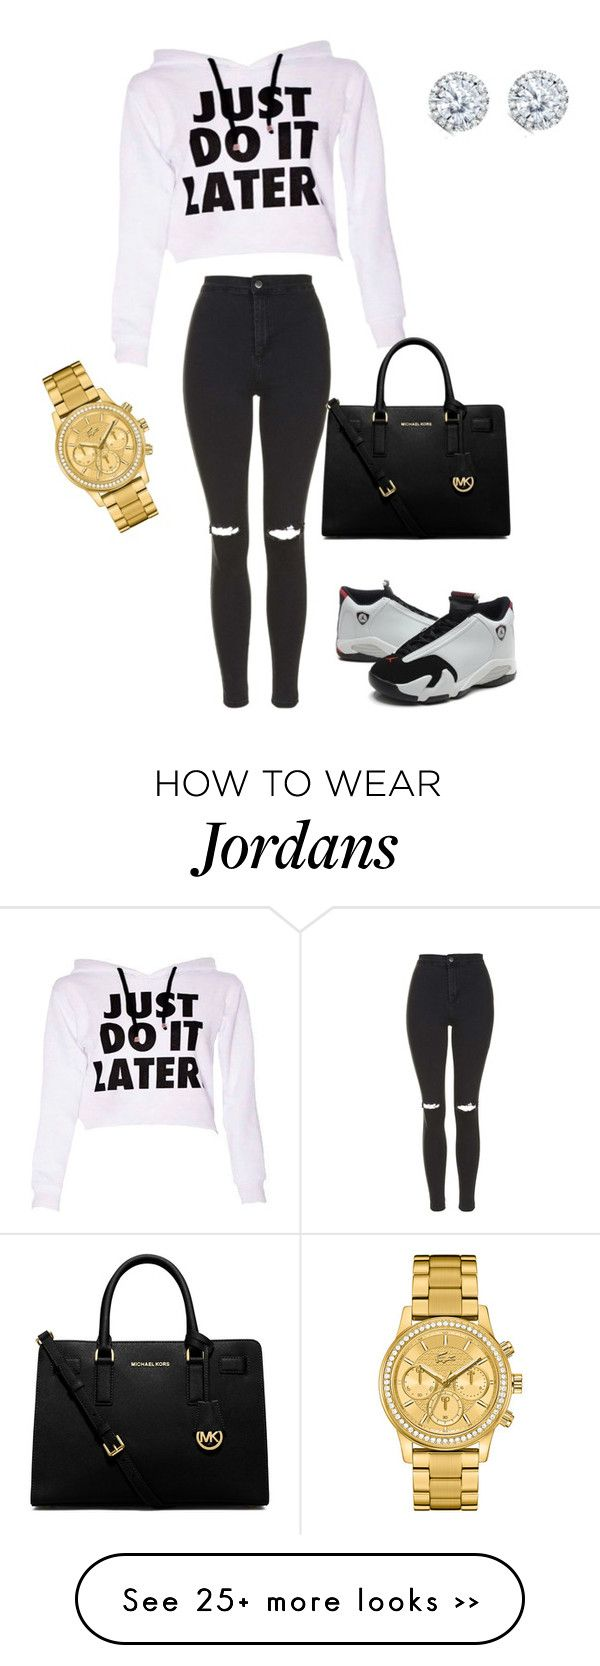 """a day out shopping"" by jessica2223 on Polyvore featuring Topshop, MICHAEL Michael Kors, Kobelli and Lacoste"